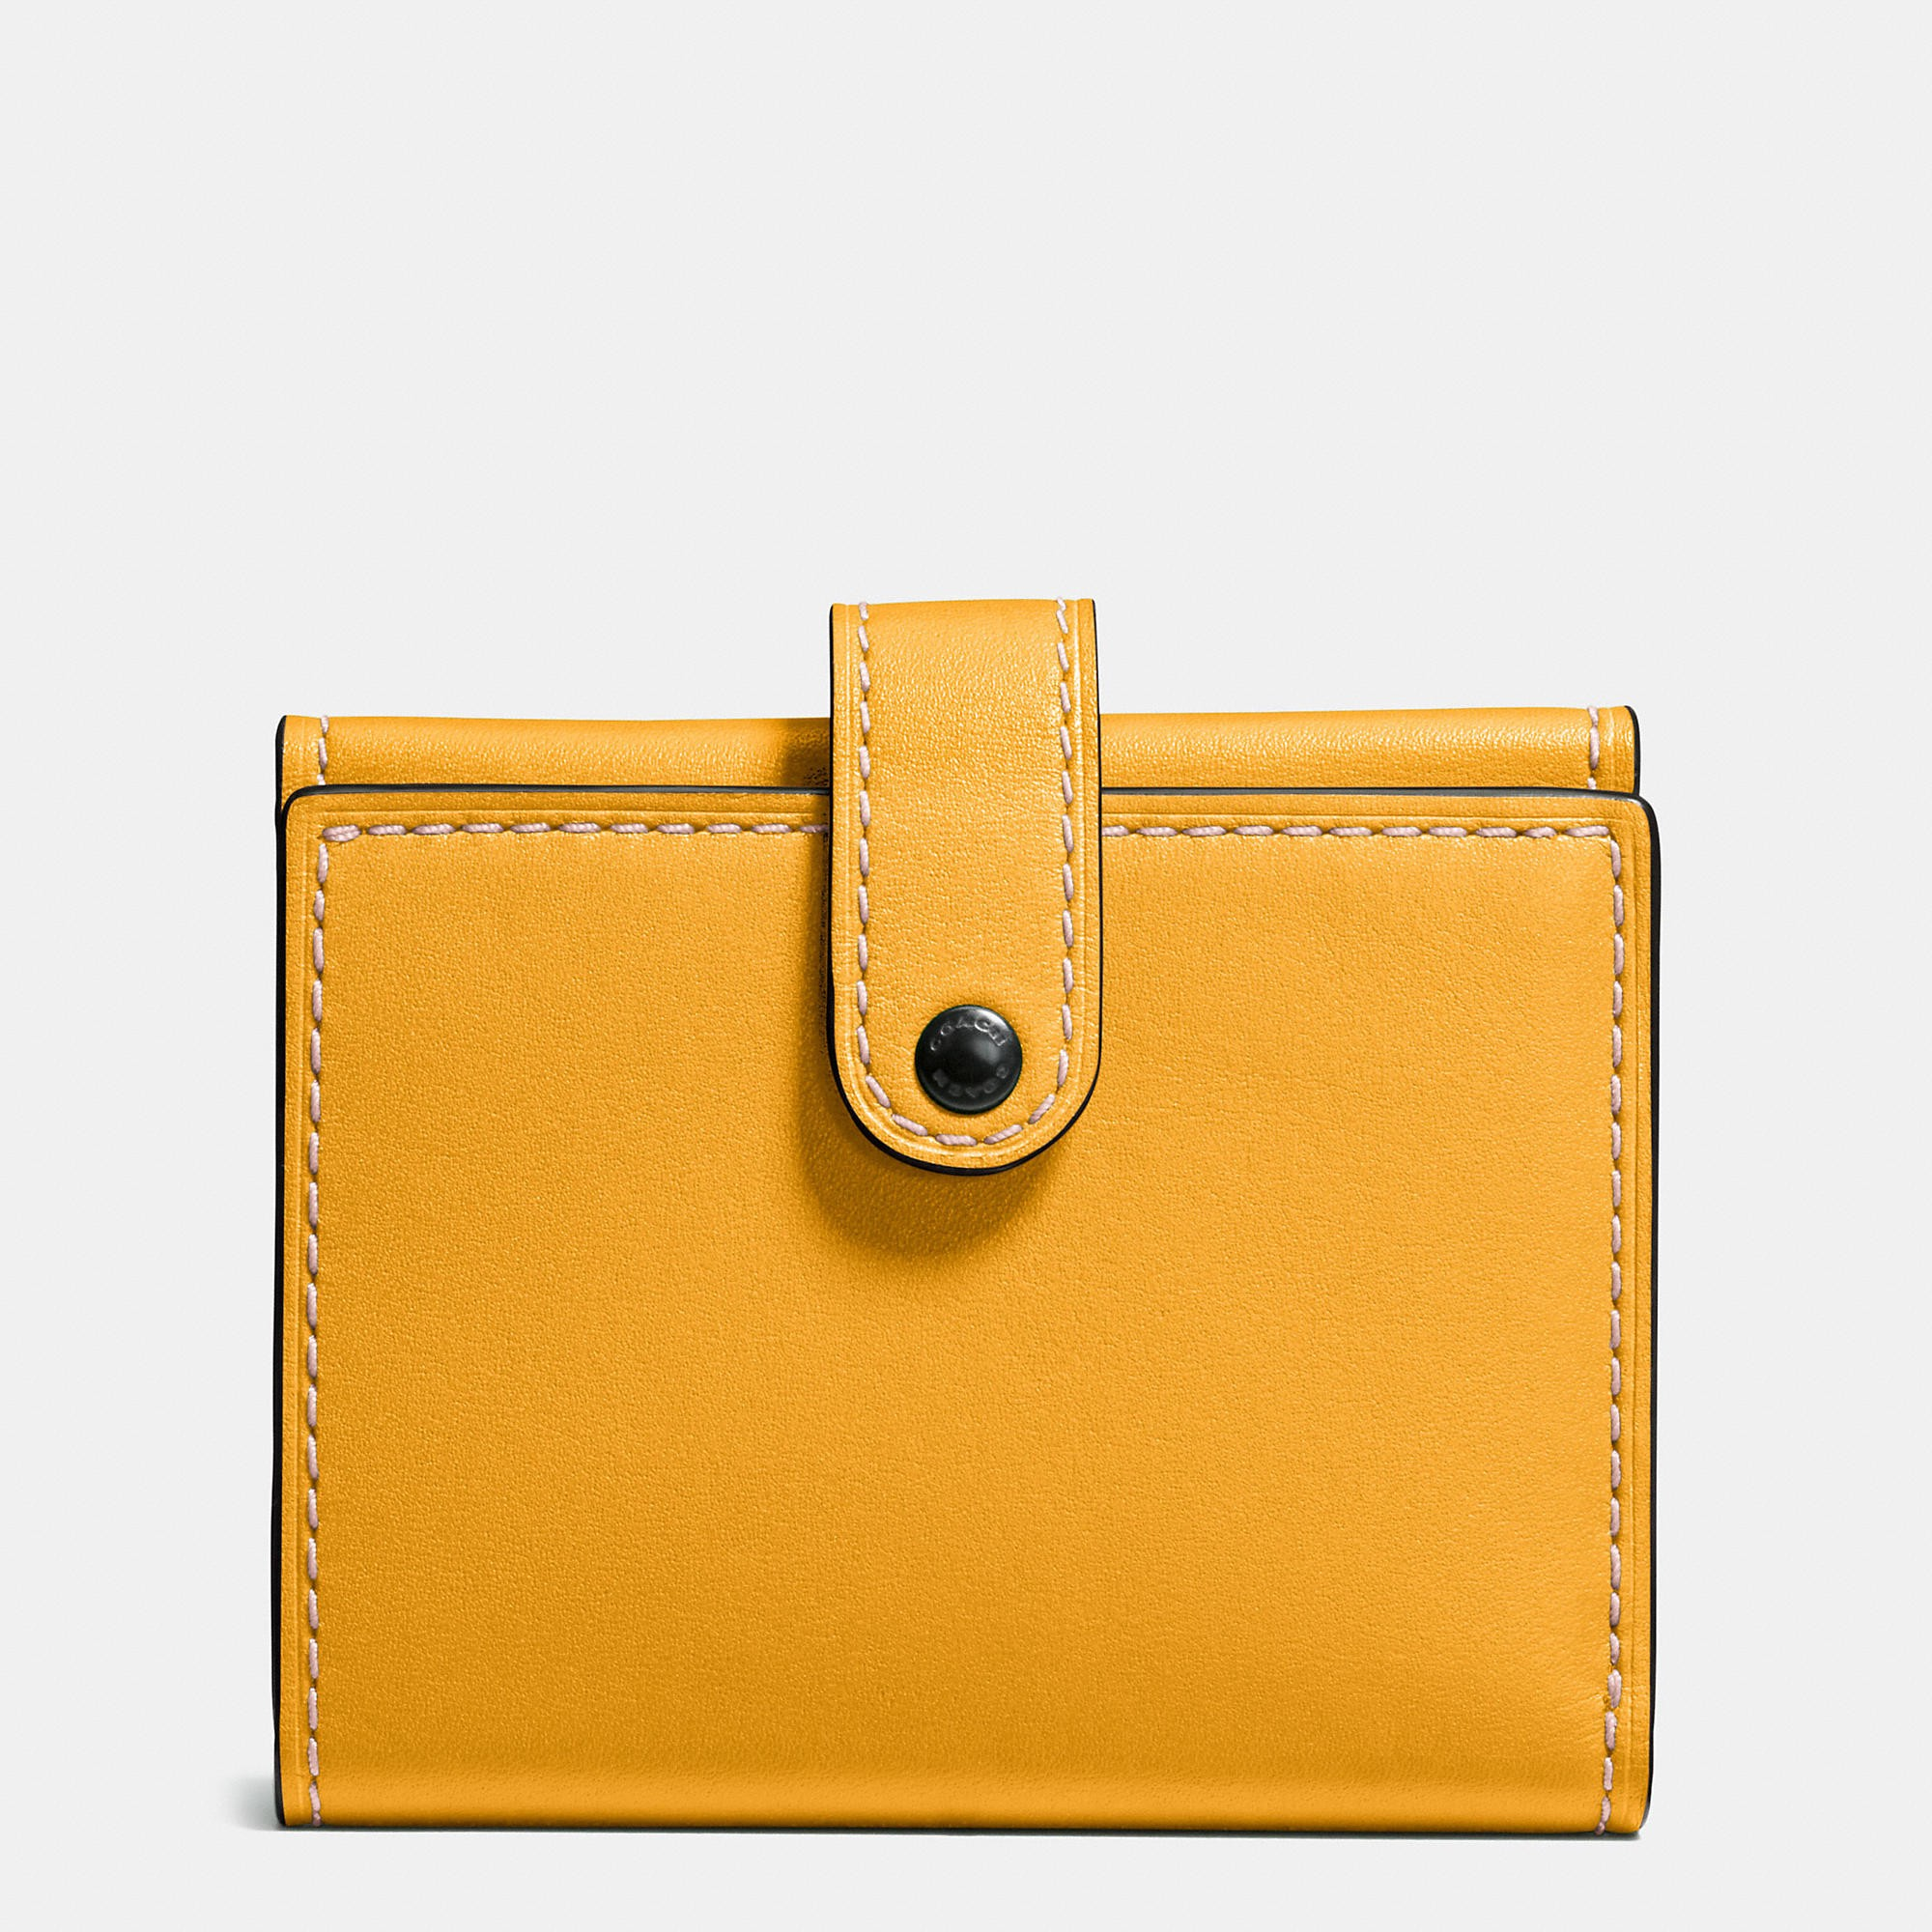 Coach Wallets SMALL trifold wallet in glovetanned leather